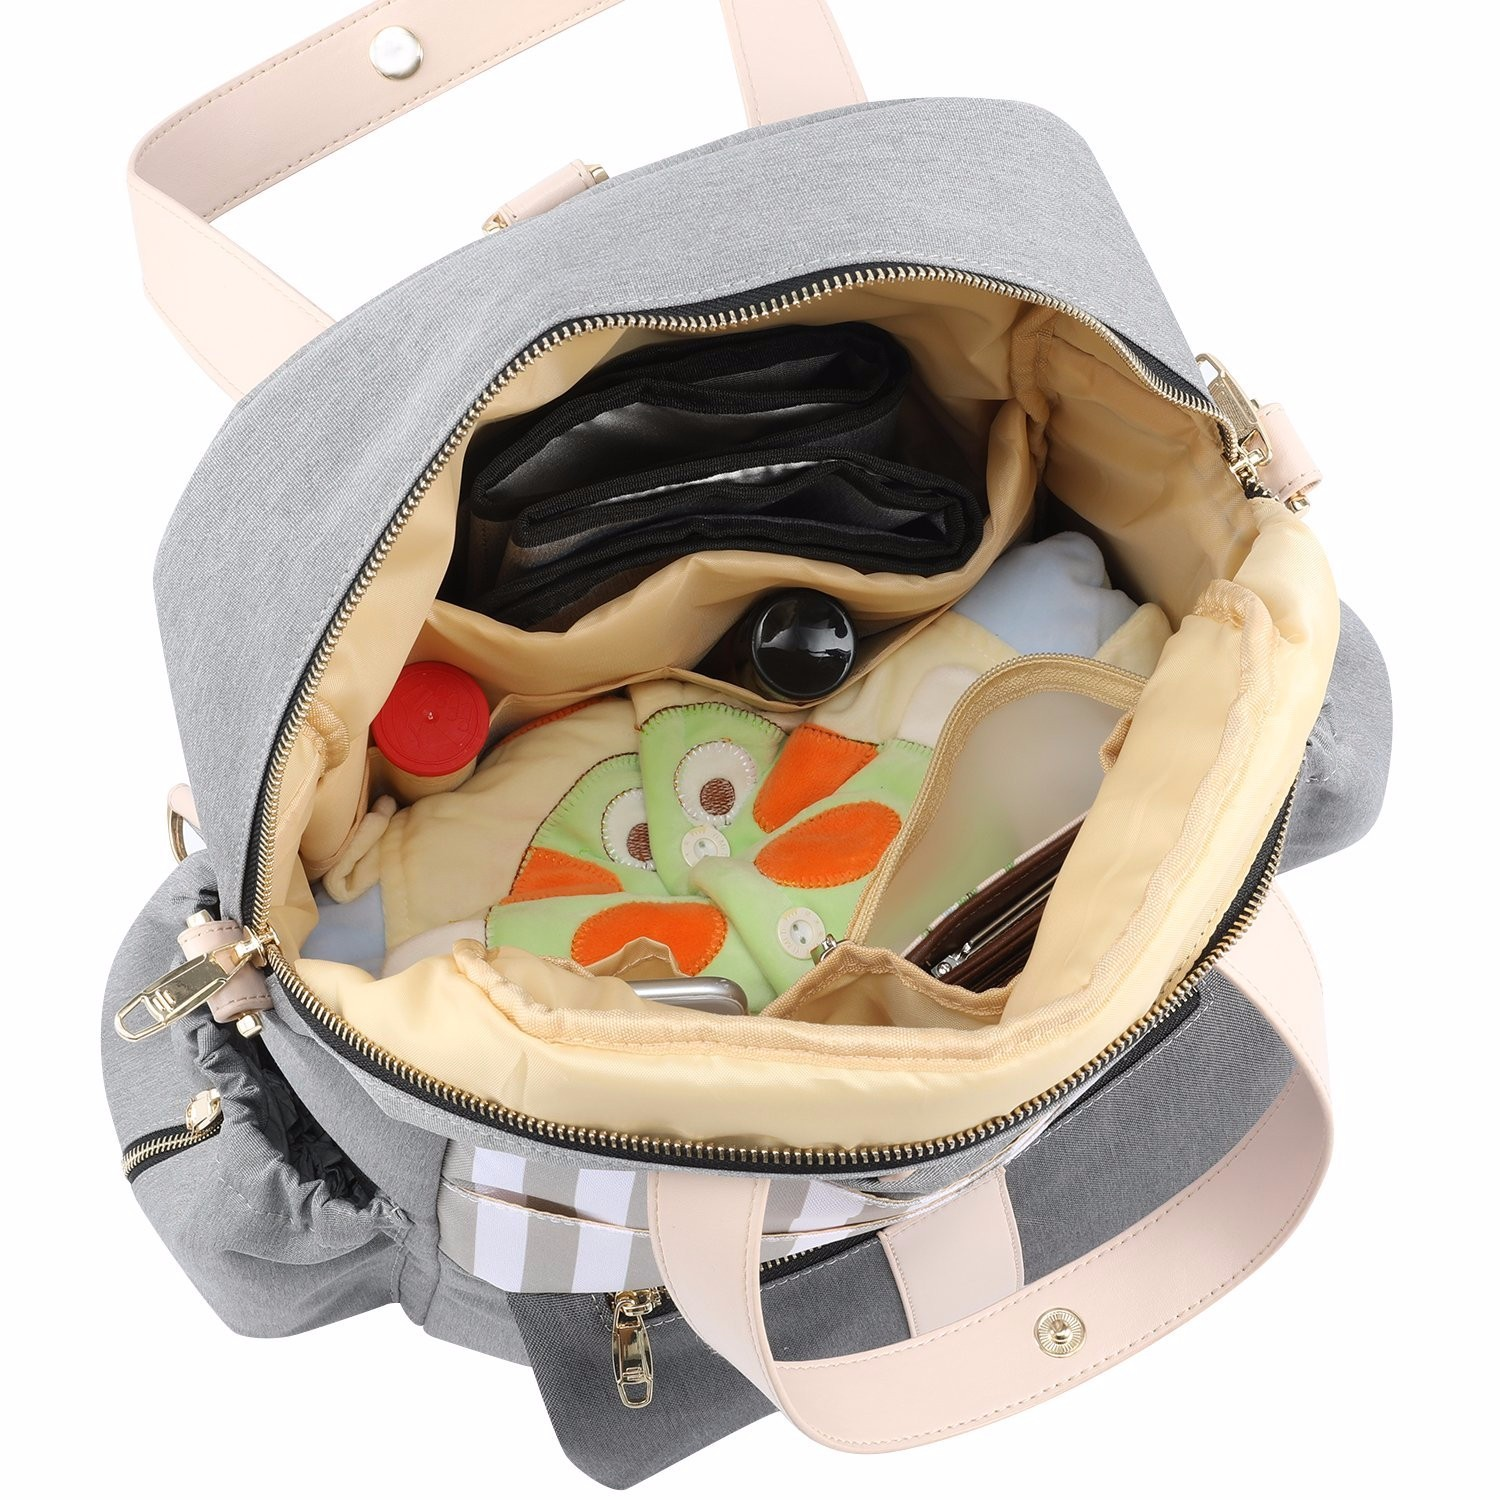 Quilted Diaper Backpack Manufacturers, Quilted Diaper Backpack Factory, Supply Quilted Diaper Backpack